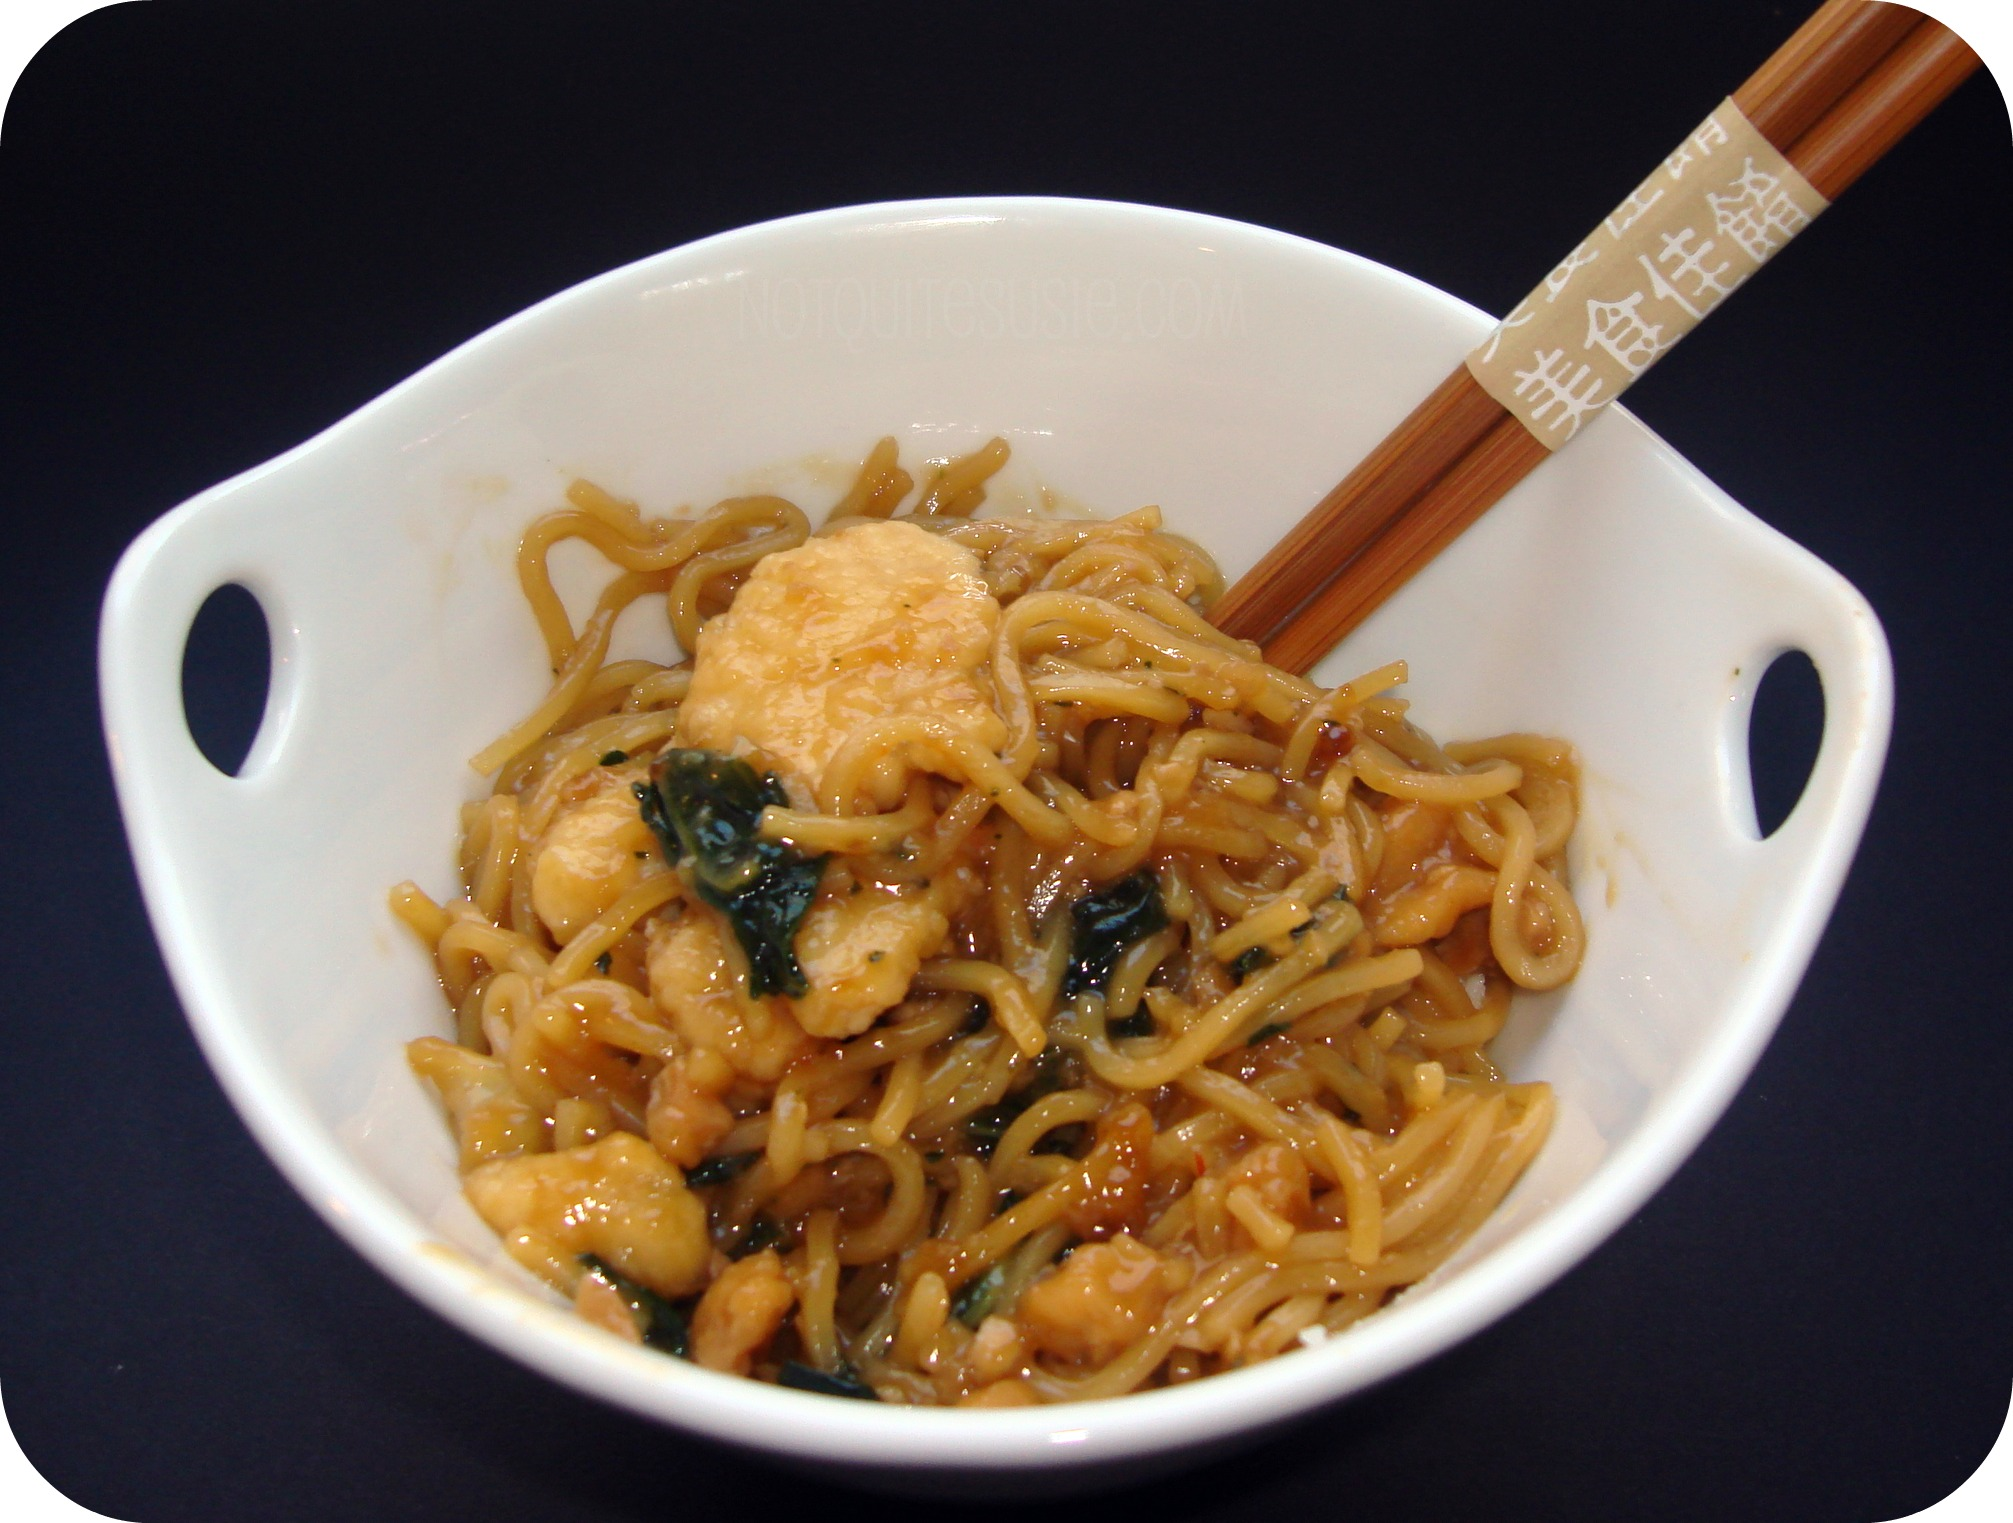 Celebrate National Noodle Day with PF Chang's Home Menu!